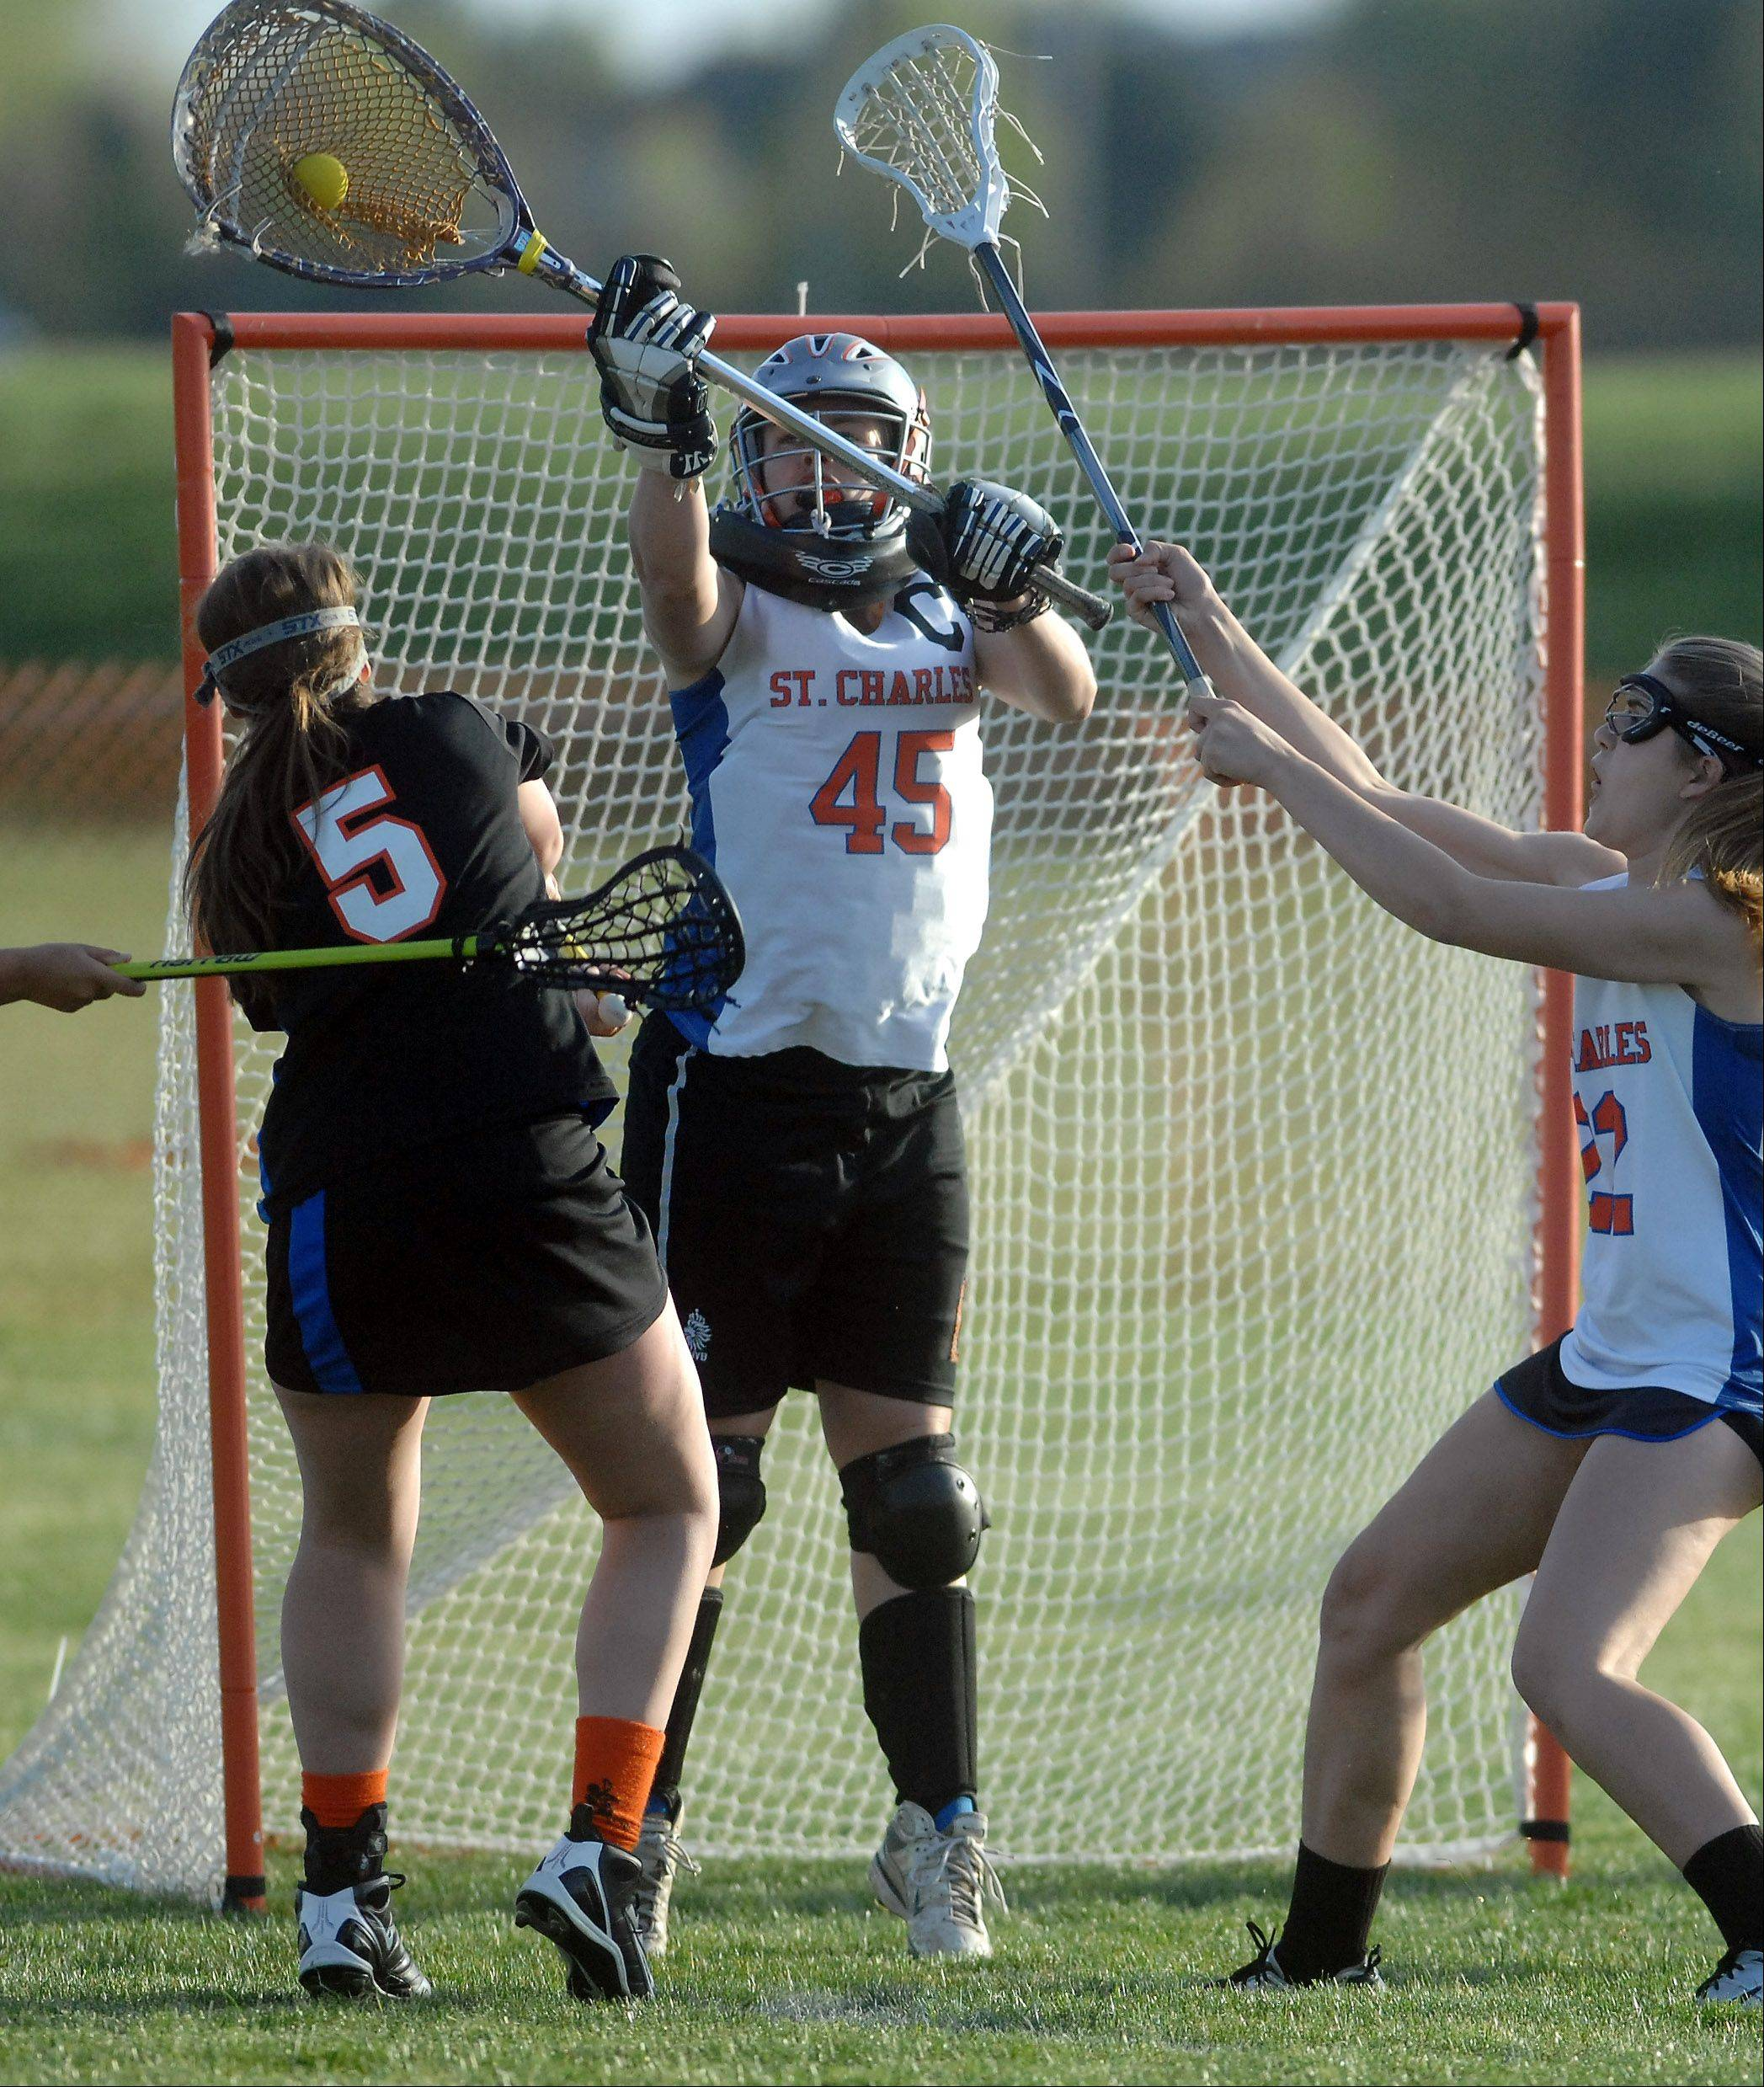 St. Charles co-op goalie Margaret Zimmer makes a save off a shot by Wheaton United's Jennine Fischer.